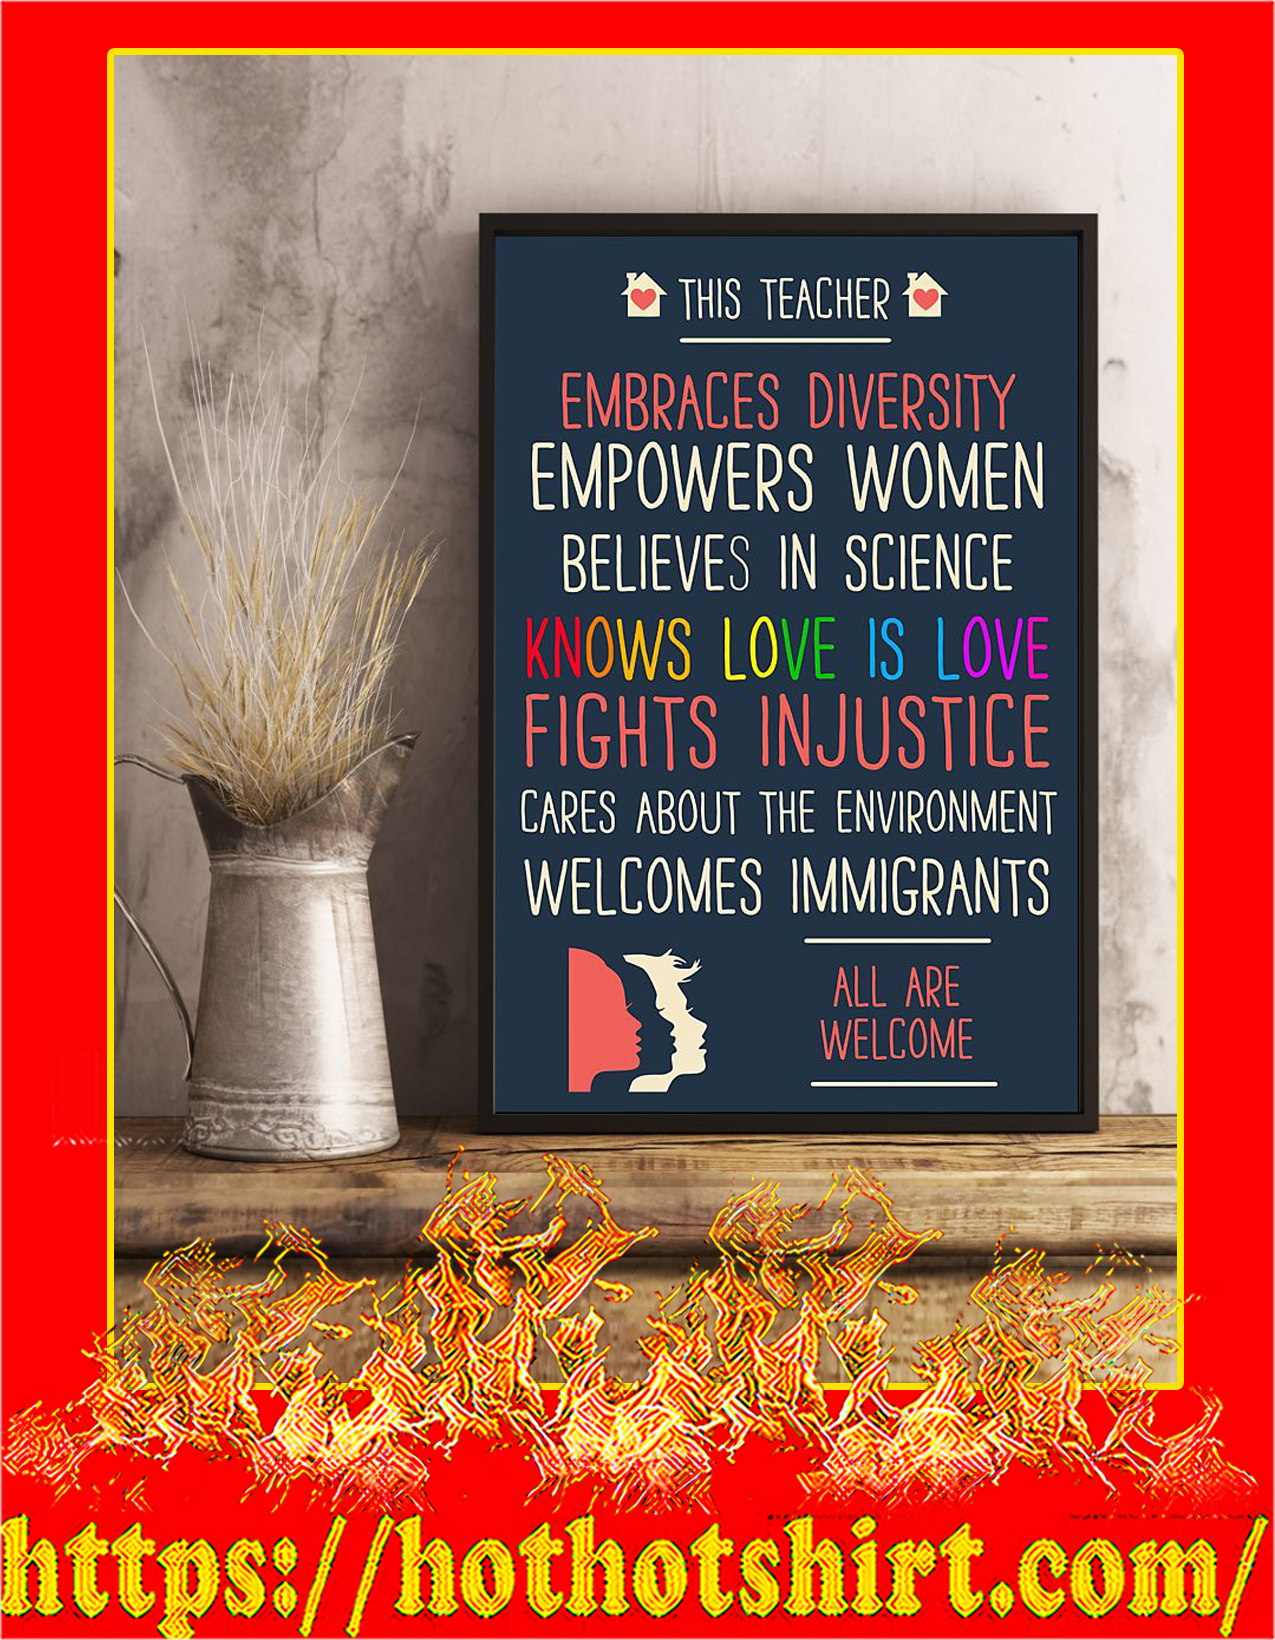 LGBT This teacher embraces diversity poster - pic 3